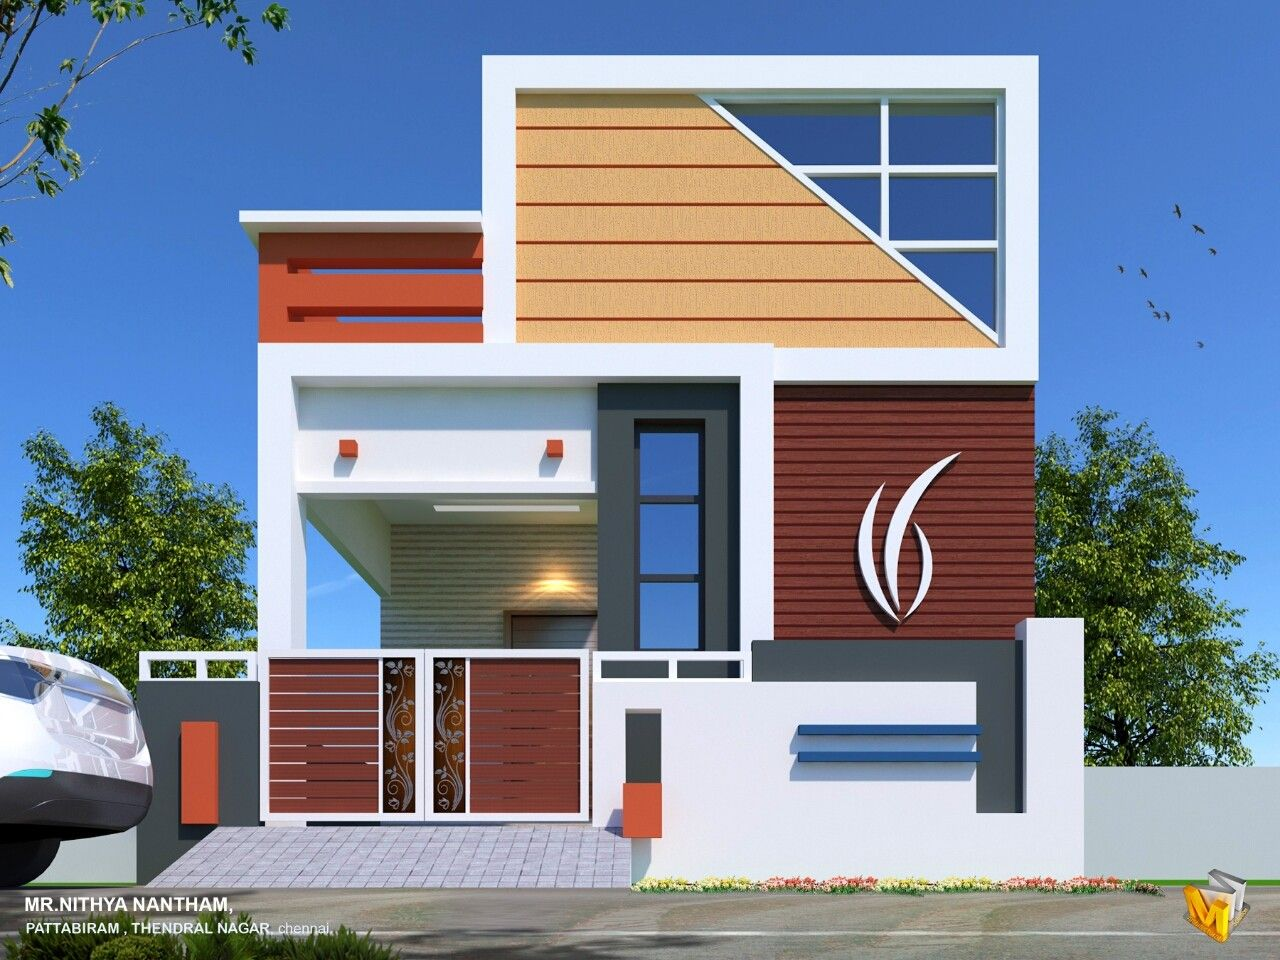 Front elevation designs house photo walls exterior colors compound wall also related image architecture pinterest rh